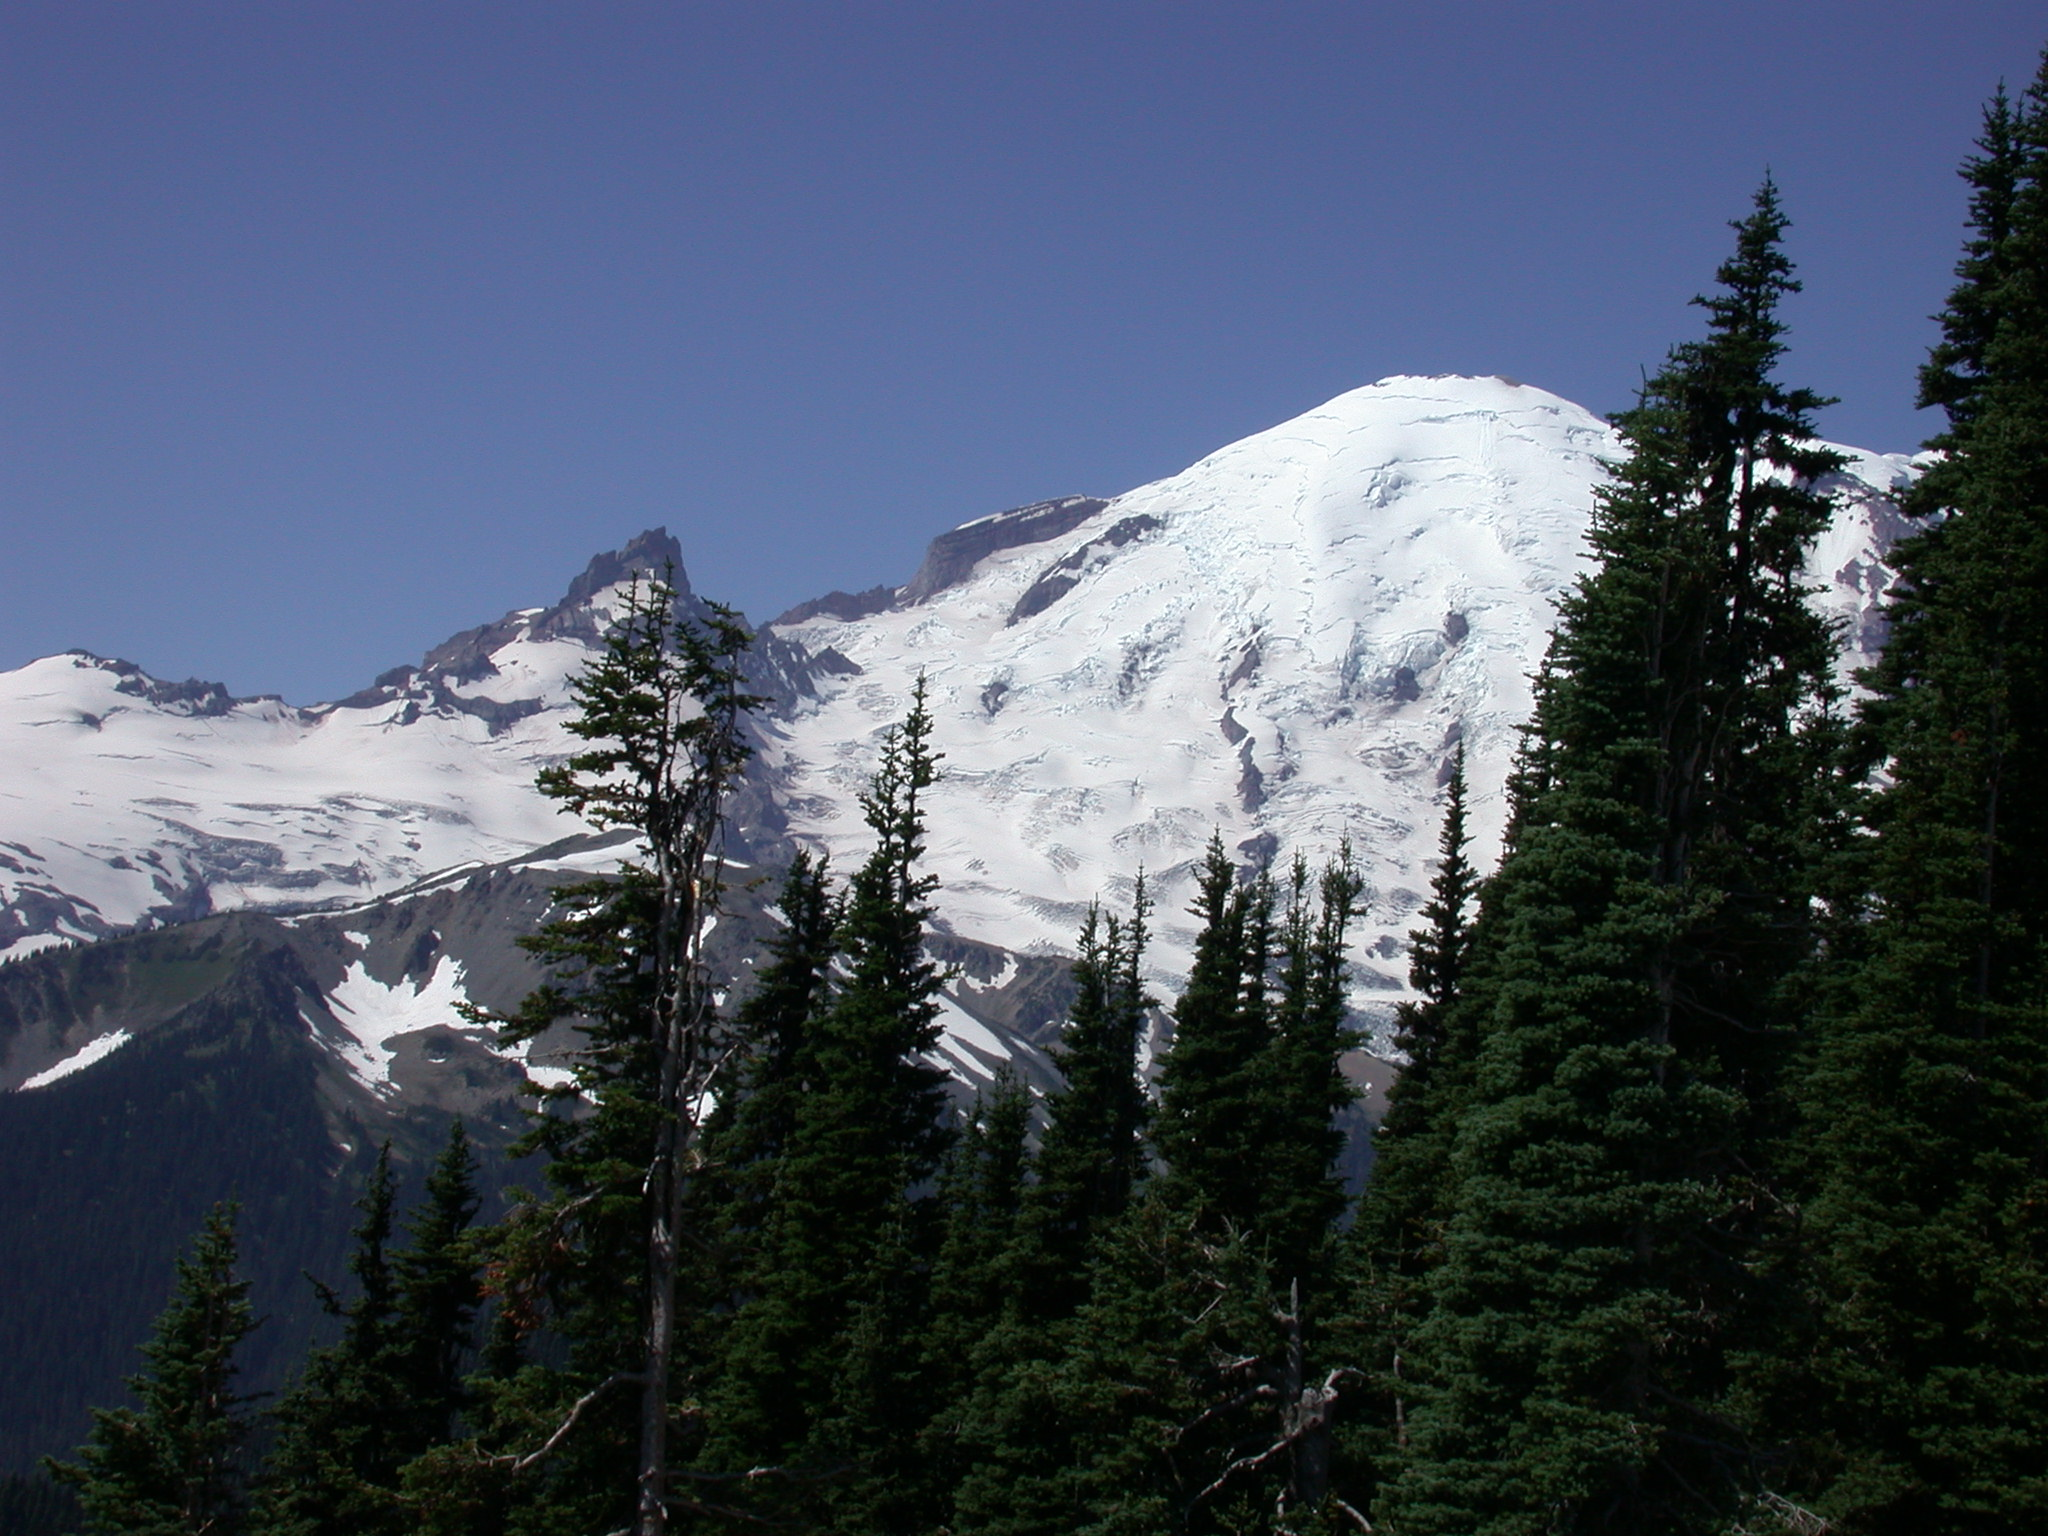 Grandmother Rainier Towering Above the Pines